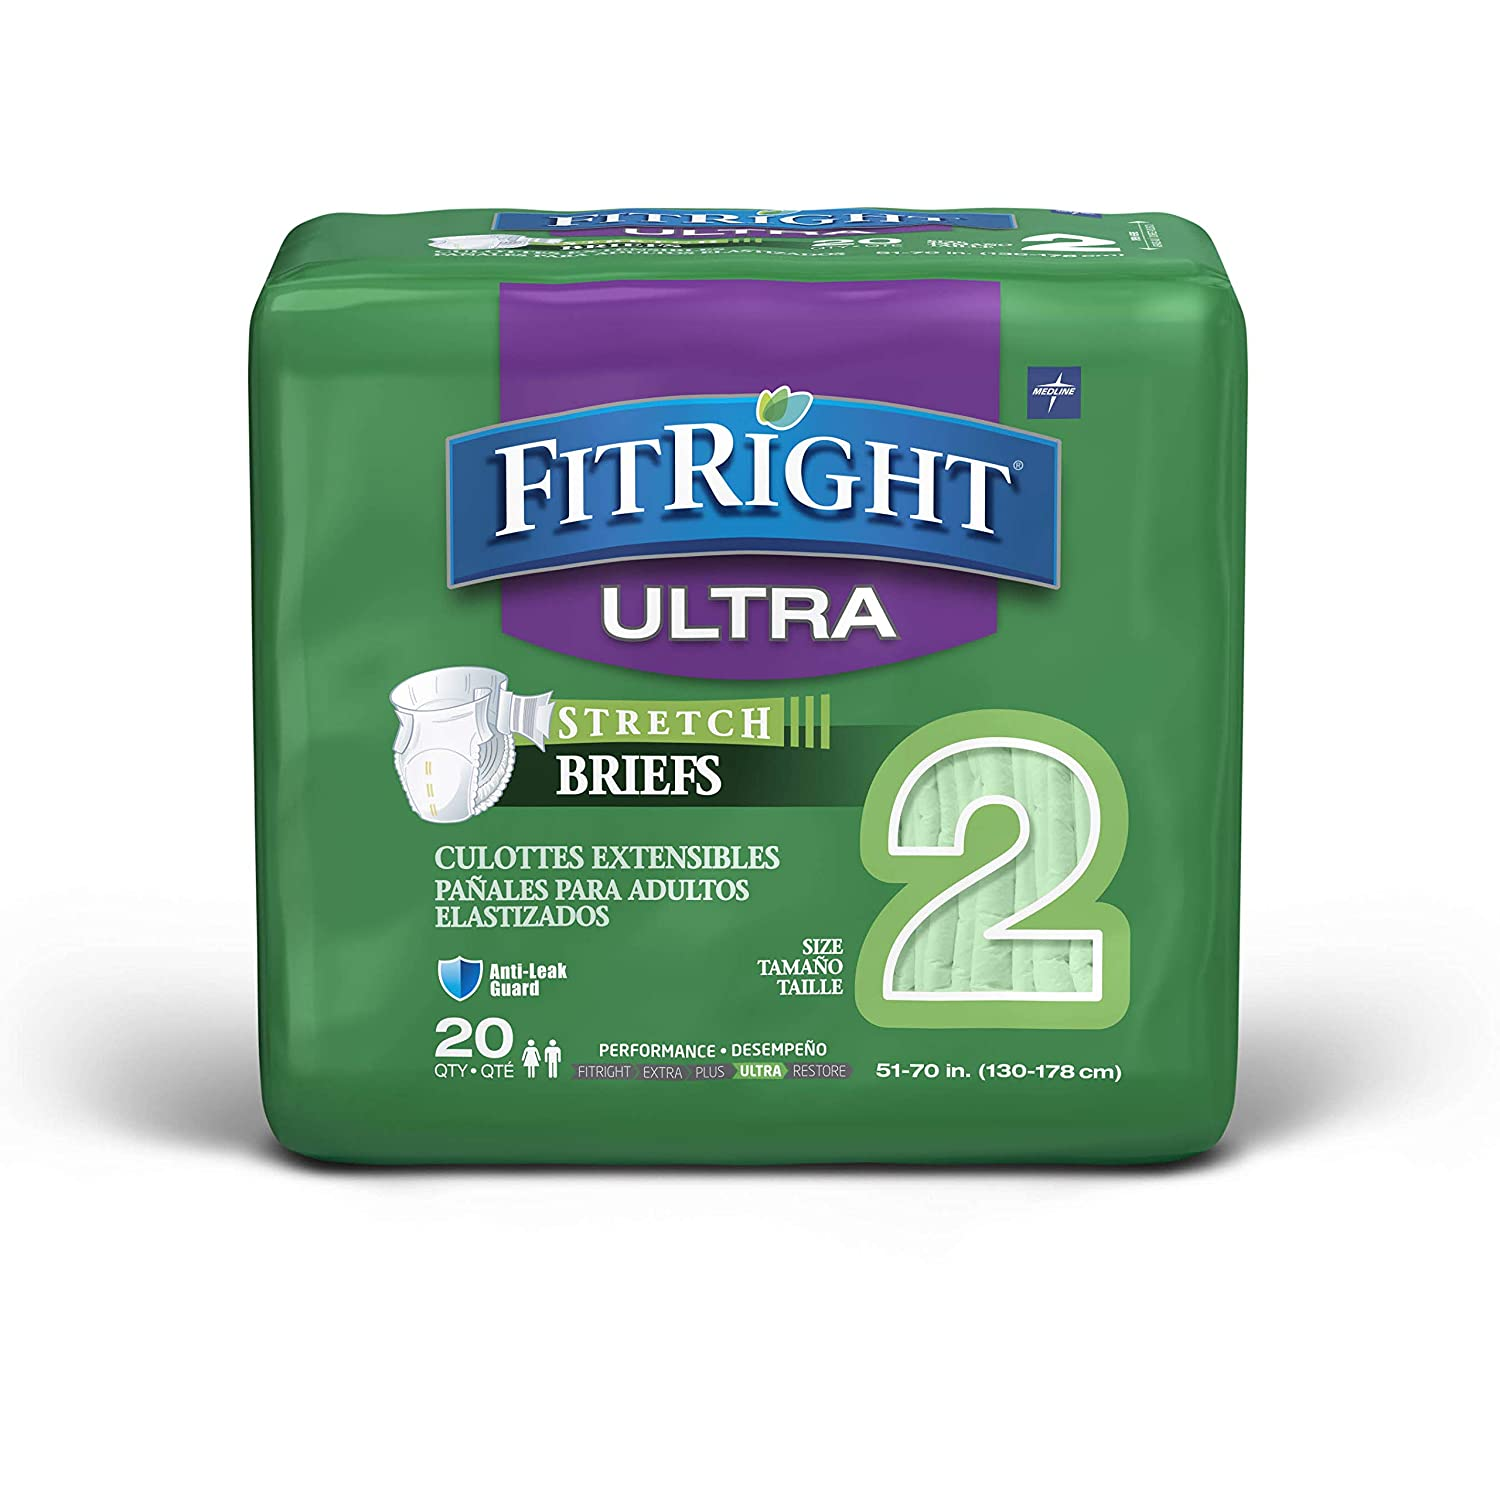 FitRight Stretch Ultra Super-cheap Adult Briefs Dia Disposable Popular Incontinence